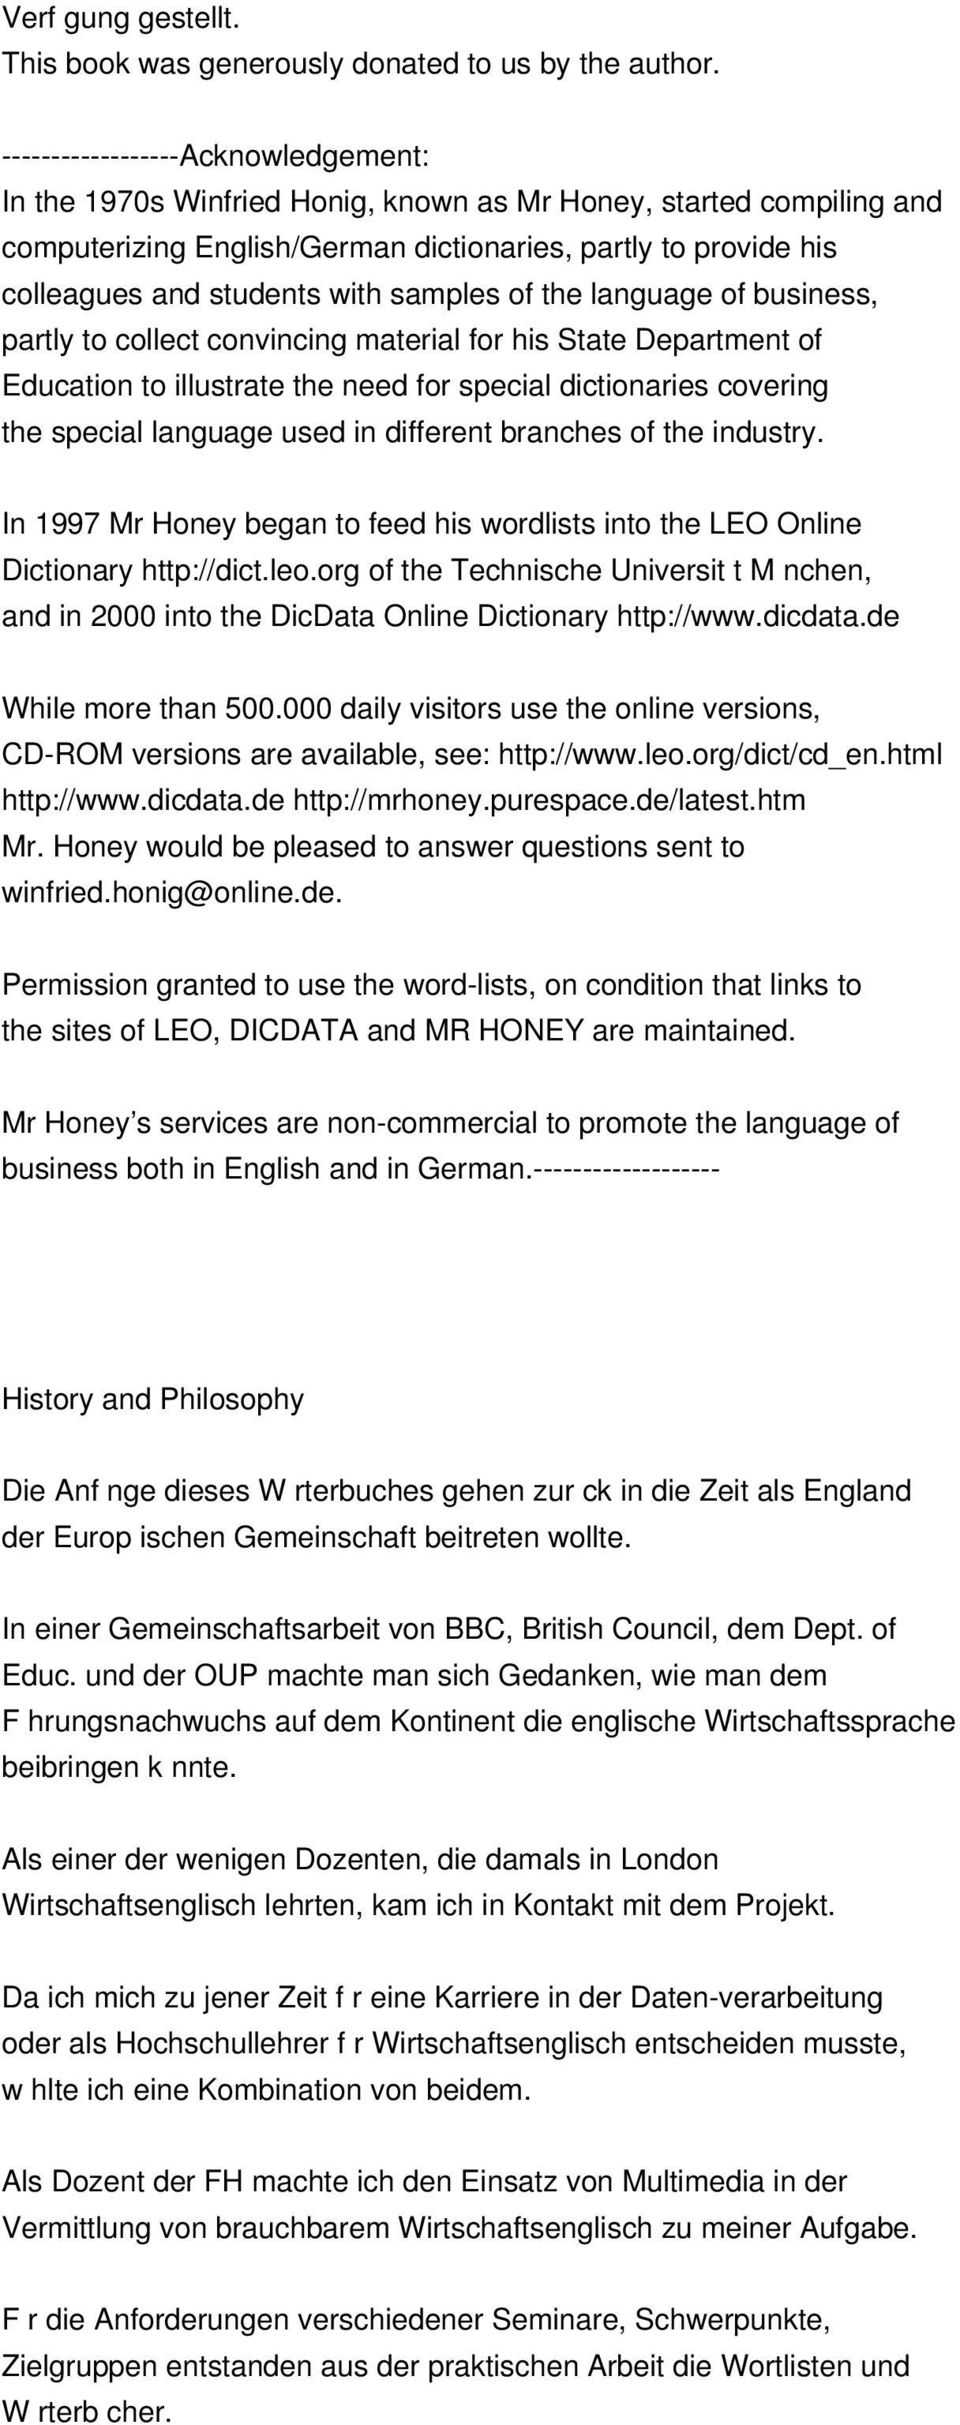 This is a COPYRIGHTED Project Gutenberg Etext, Details Below** - PDF